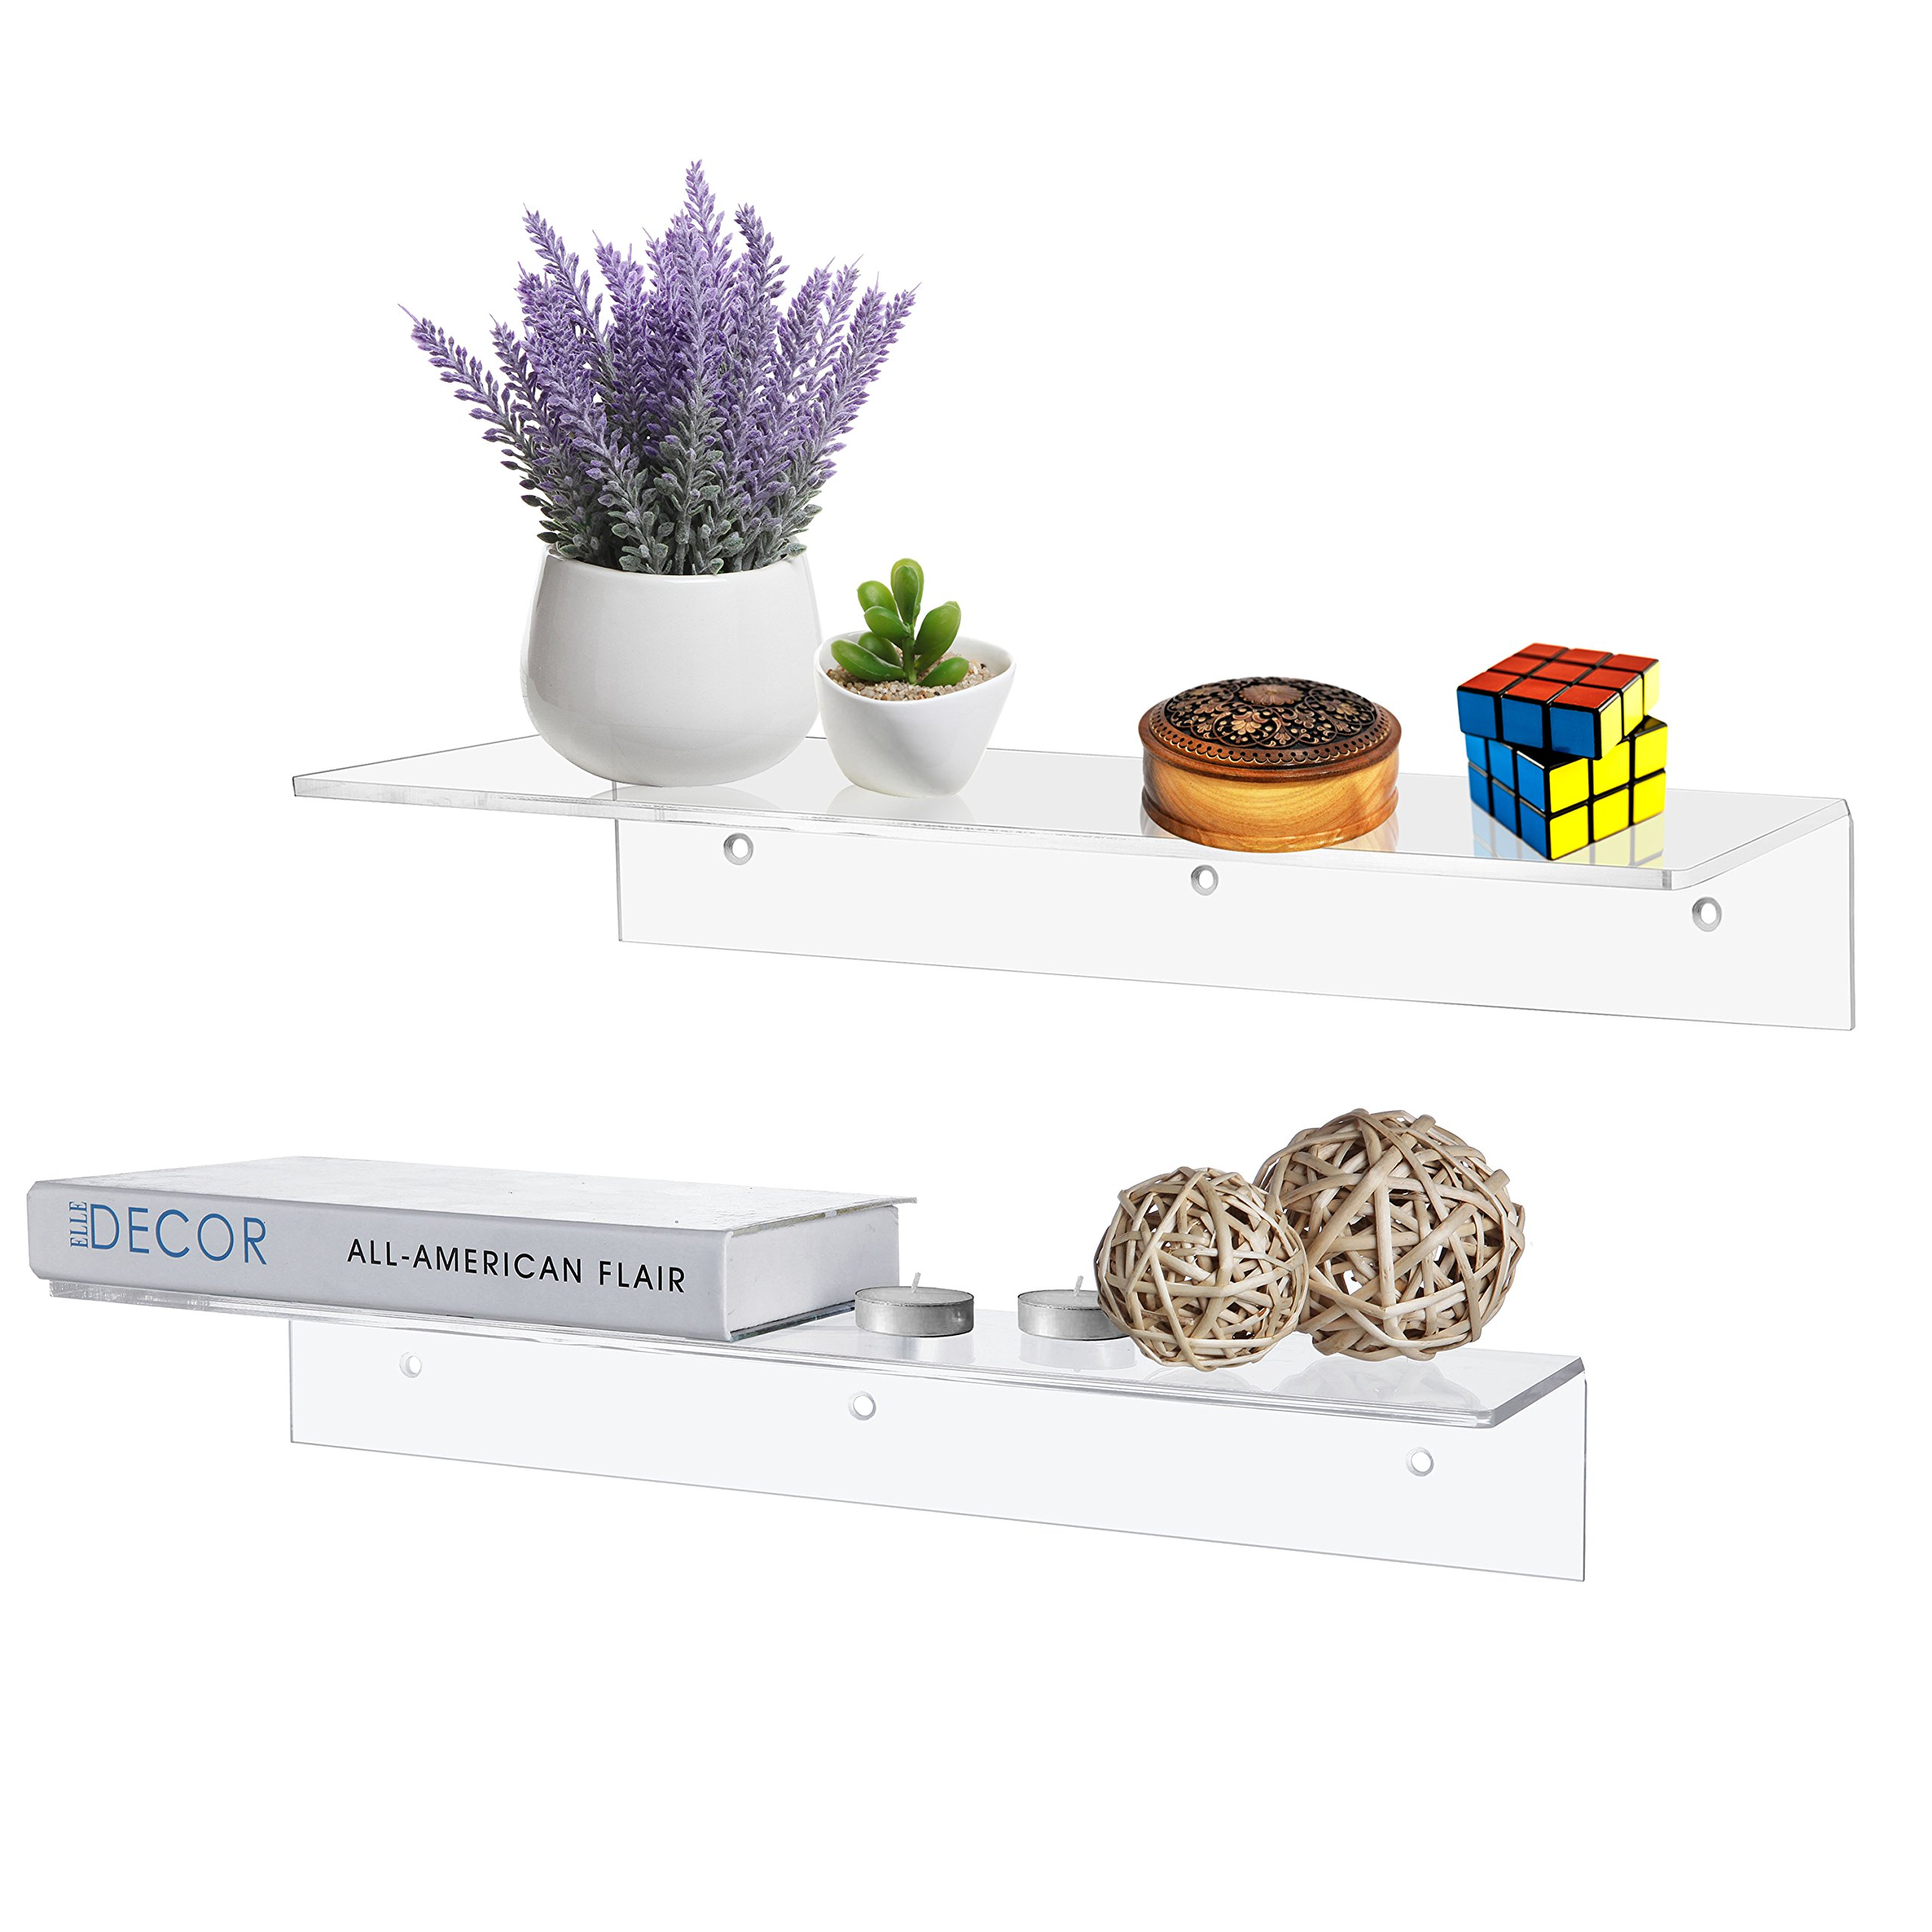 MyGift 17 Inch Contemporary Clear Acrylic Floating Shelf/Wall Mounted Display Organizer, Set of 2